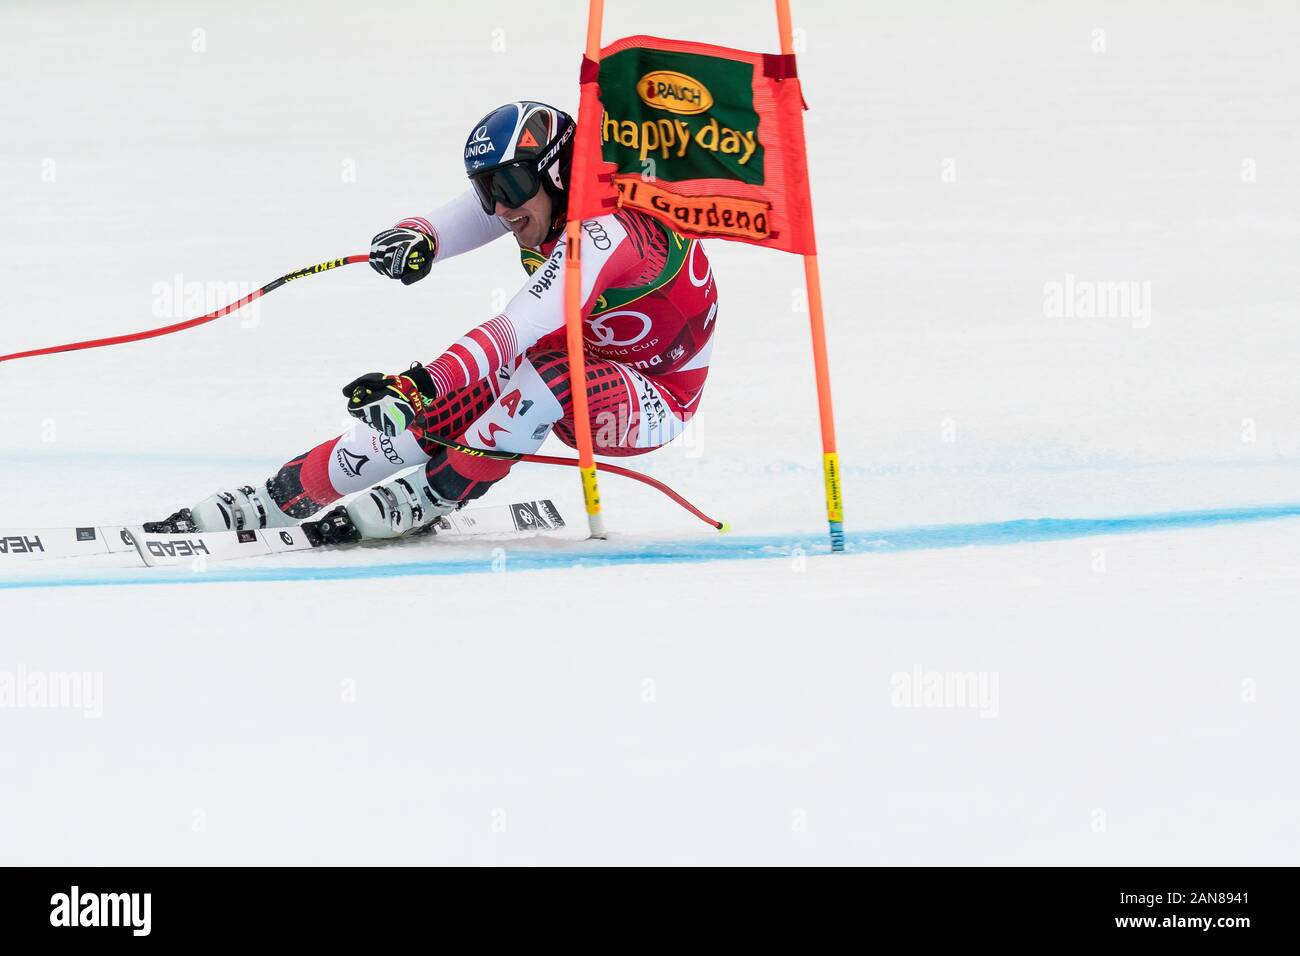 Val Gardena, Italy 20 December 2019. Mayer Matthias (Aut) competing in the Audi Fis Alpine Skiing World Cup Men's Super-G Race  on the Saslong Course Stock Photo